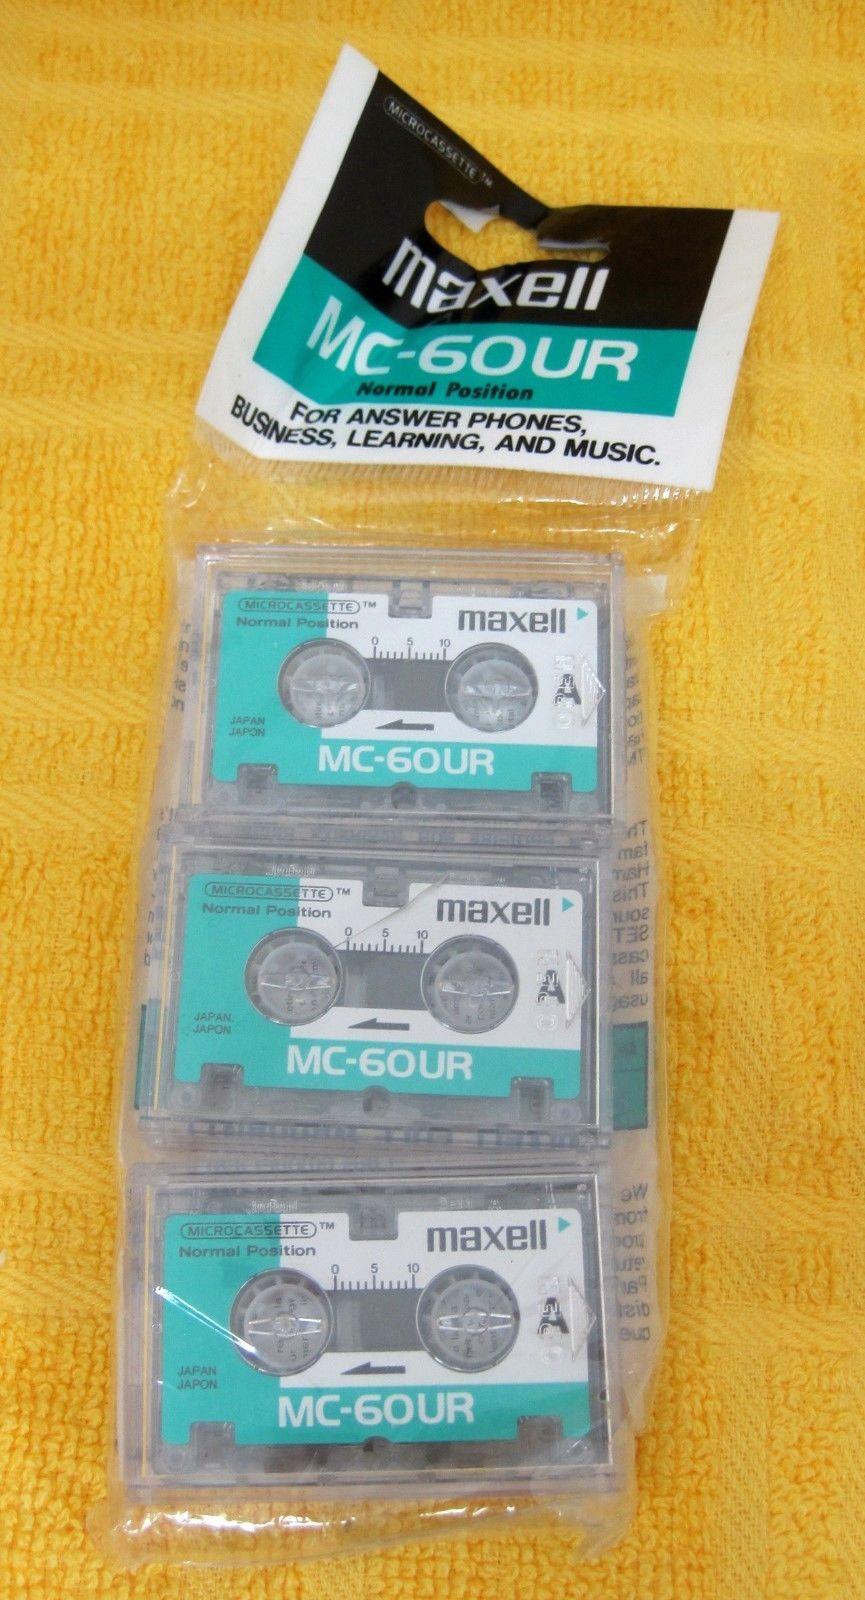 Primary image for New in Pack Maxwell MC 6our MIP Micro Cassette MIP New Old Stock Pack of 3 T95